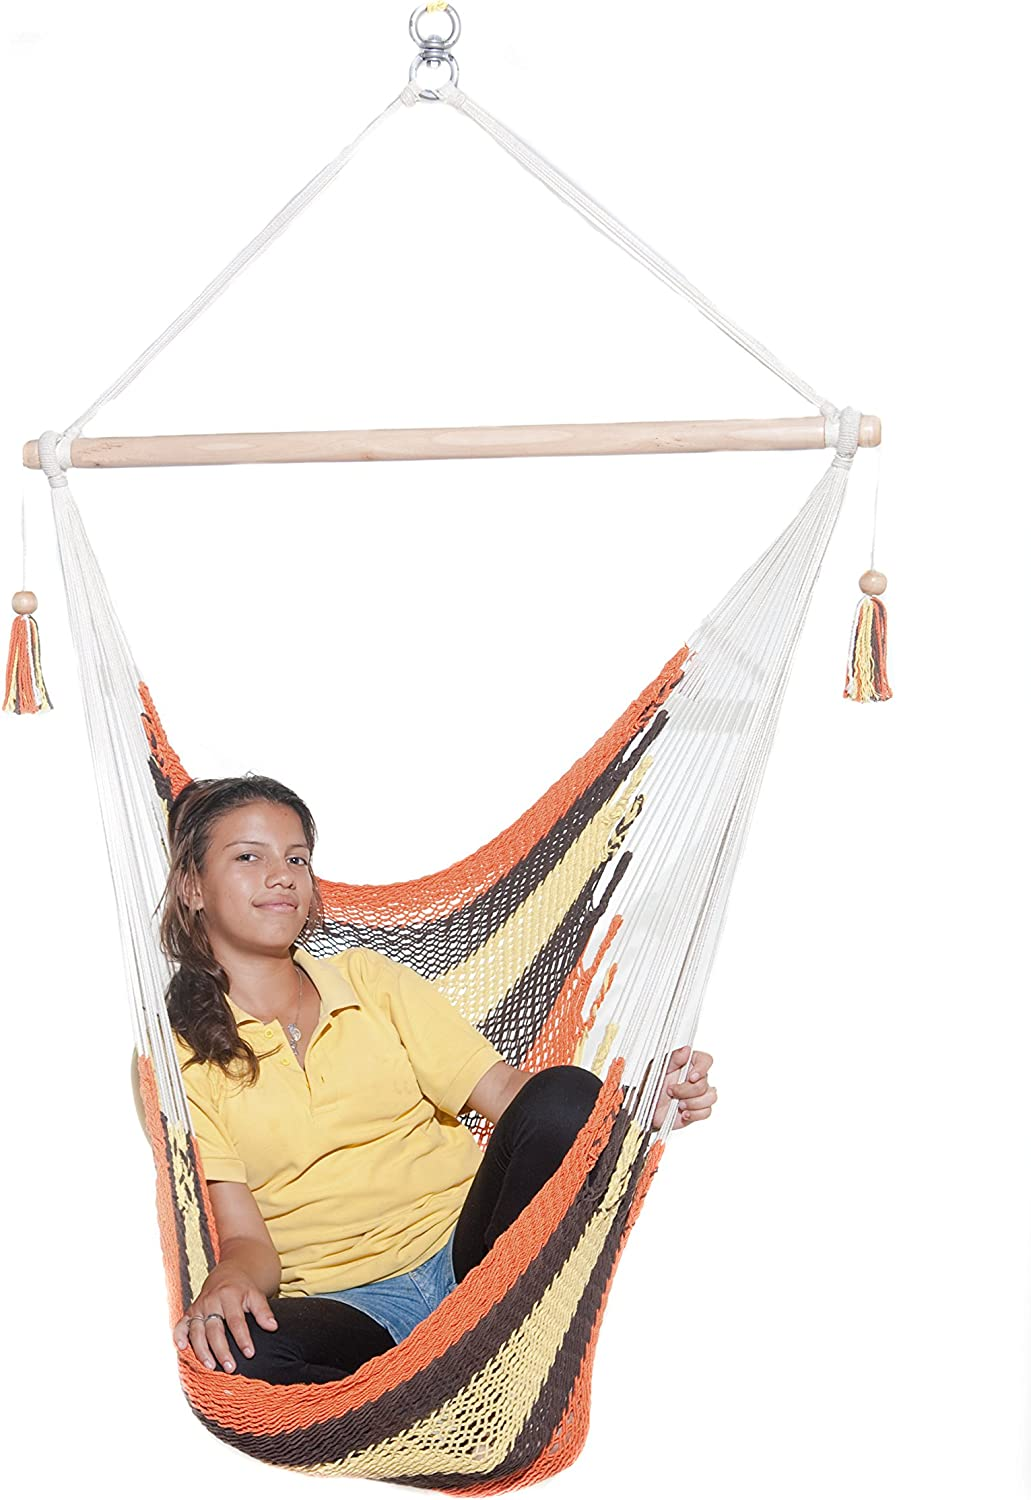 Amazon Com Toucan Hammocks Chair Hammock Swing Patio Garden Cradle Premium Quality Fairtrade Autumn Design Garden Outdoor